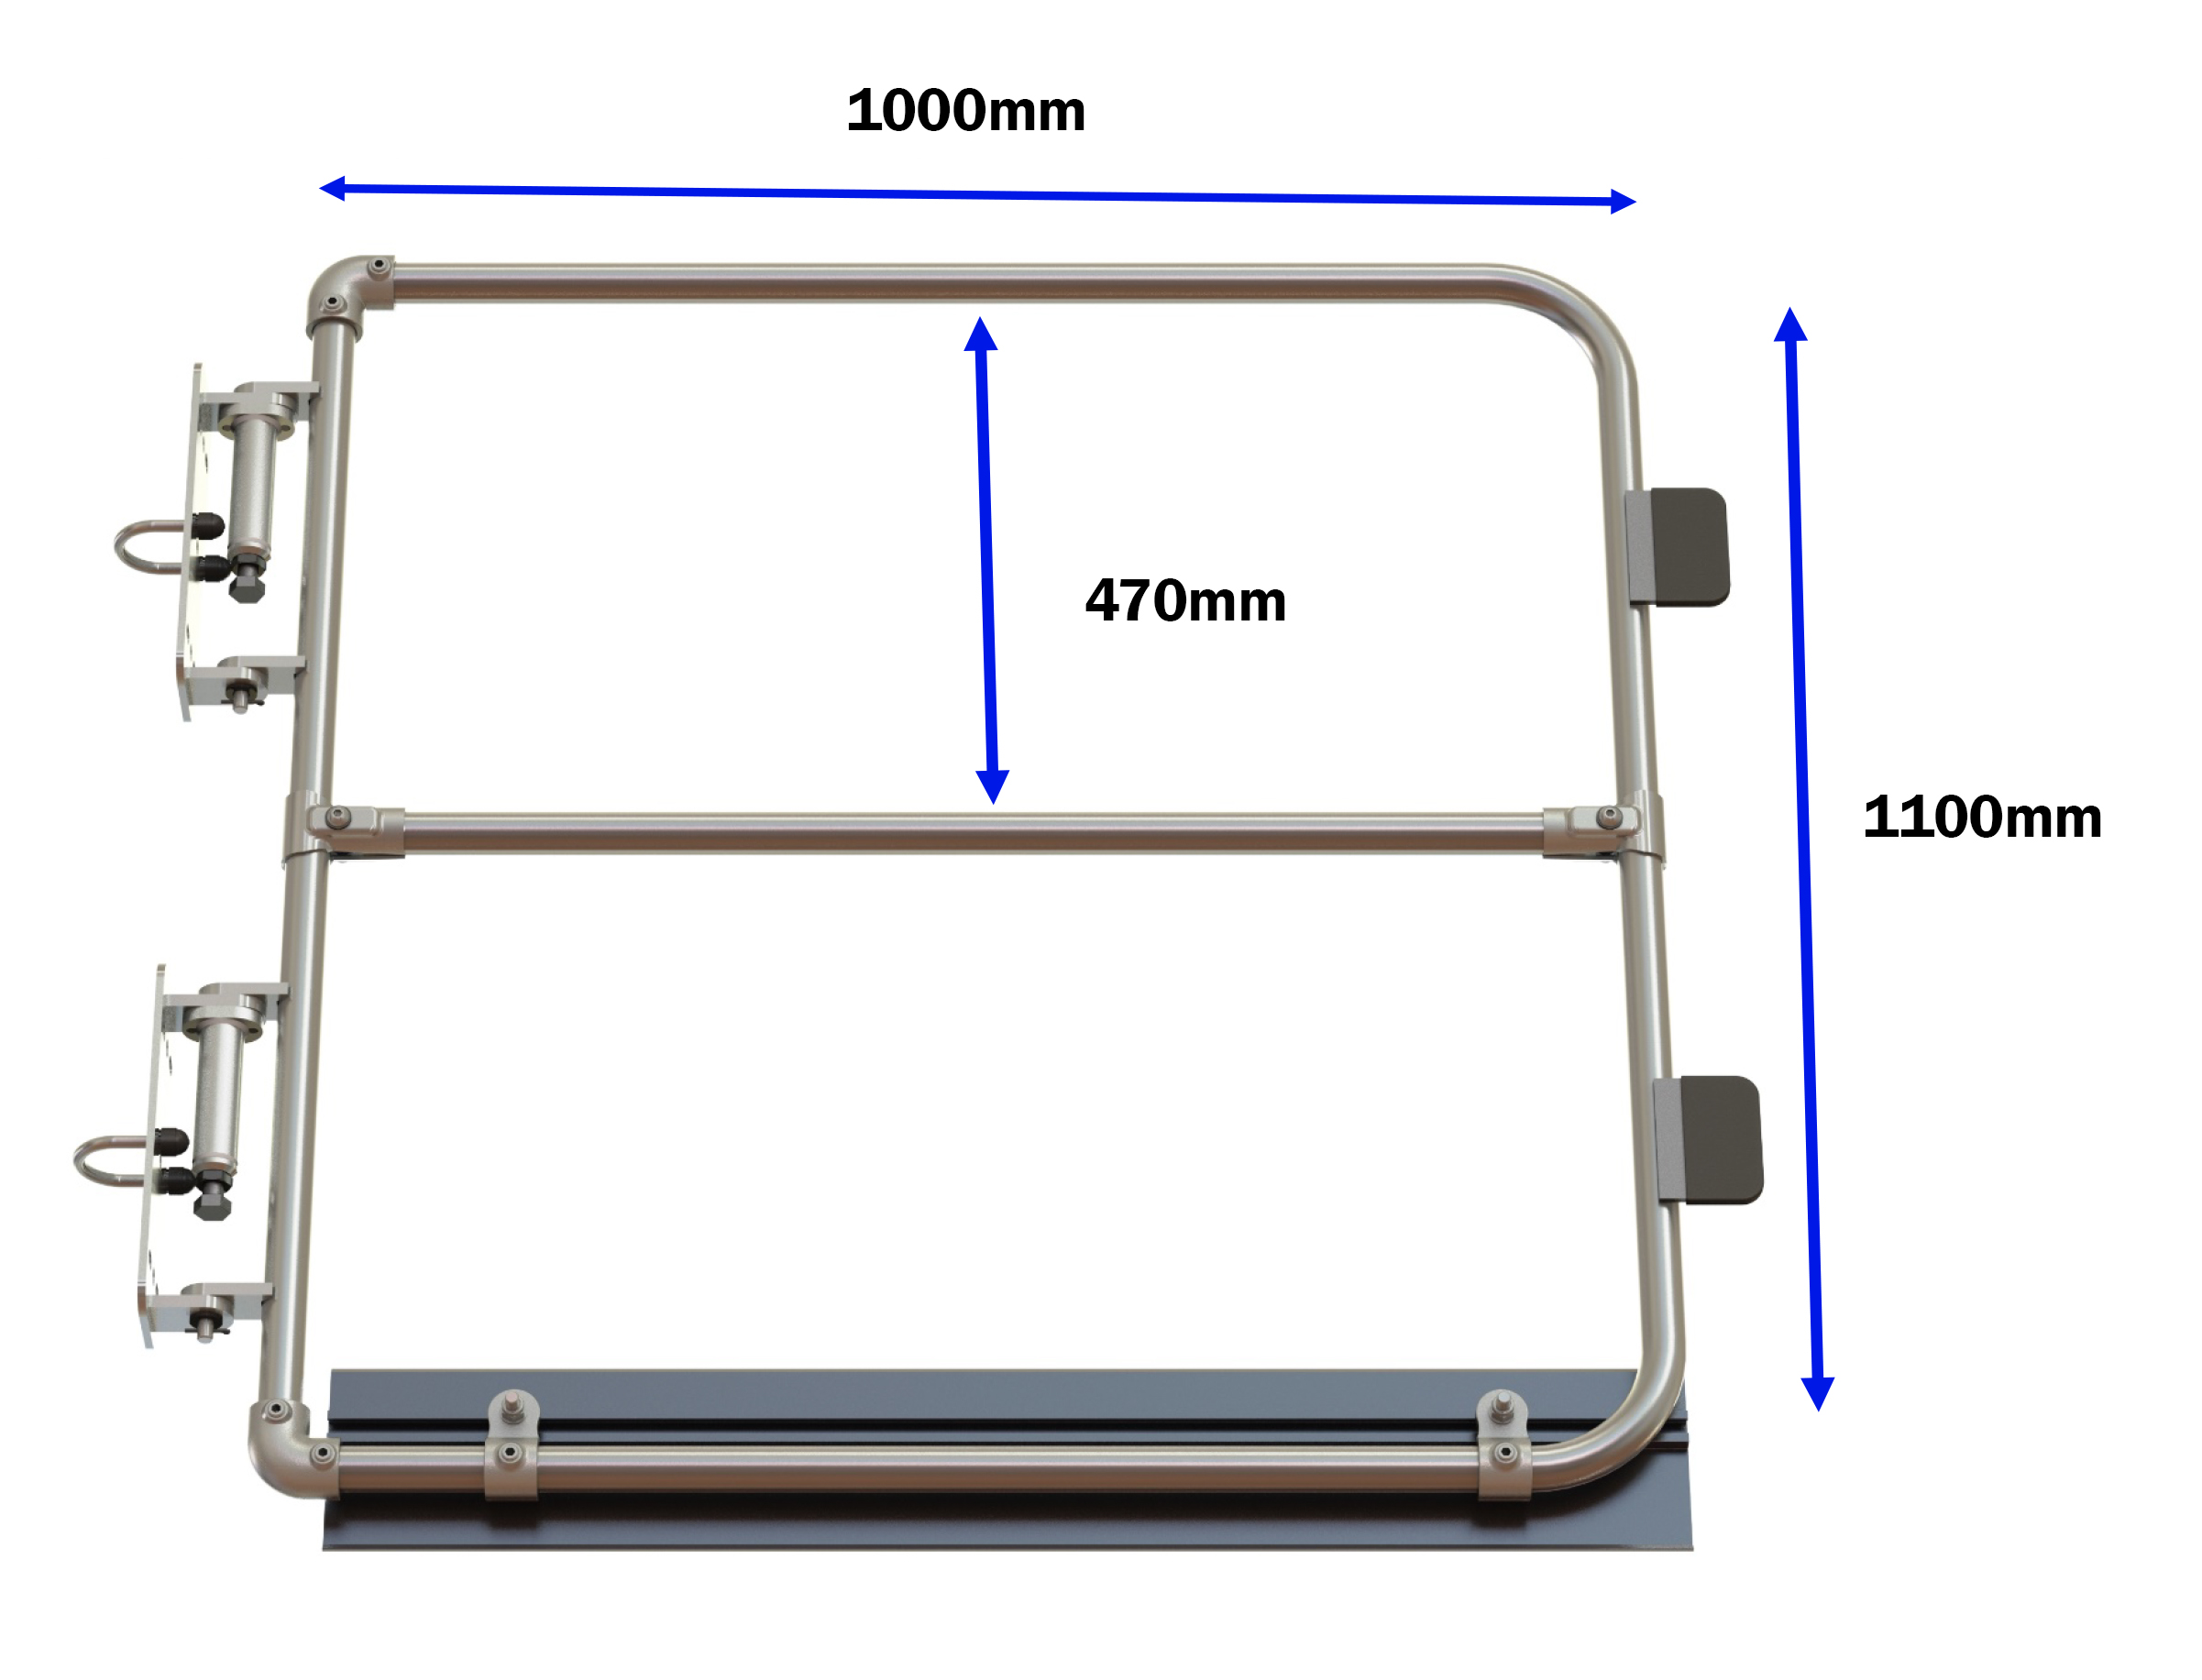 Full height self closing safety gate (galvanised)-1494